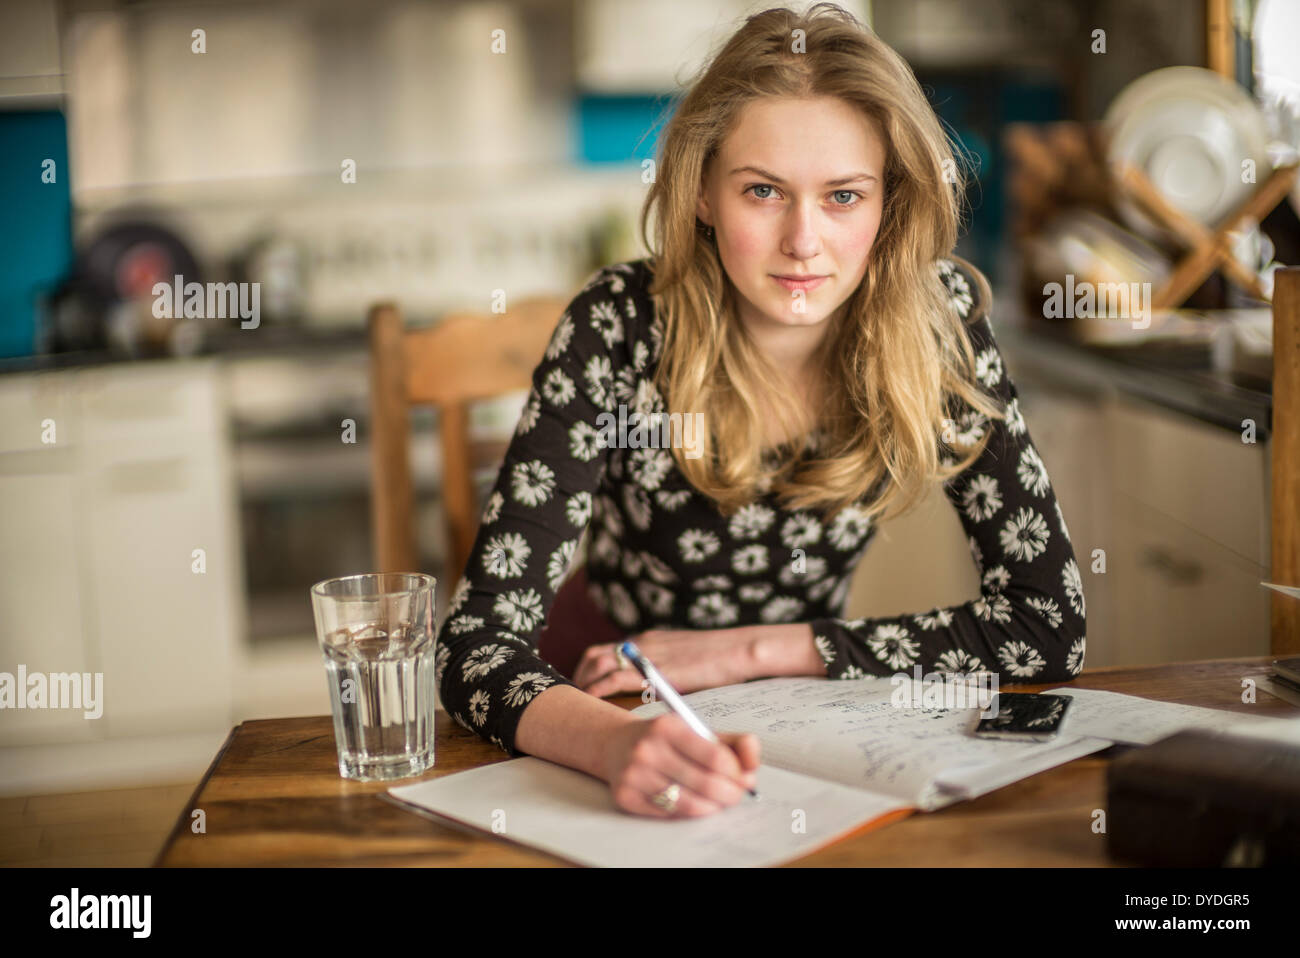 a 16 year old girl doing math homework on the kitchen table DYDGR5